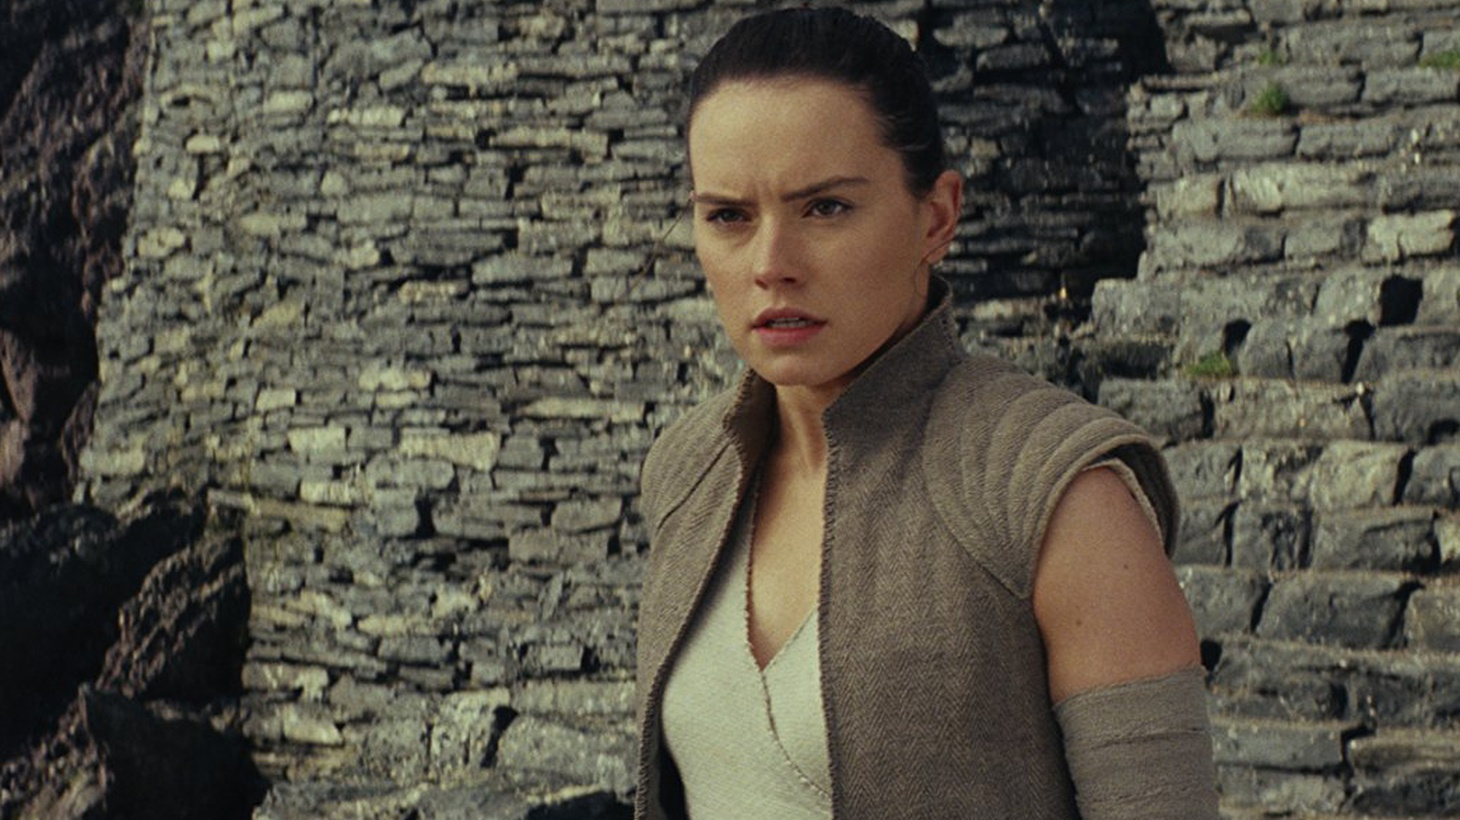 The Last Jedi starts where The Force Awakens left off. The rebels are in full retreat, and Rey has discovered Luke Skywalker as a monkish hermit on a faraway island of a really faraway planet. The question is what comes next...